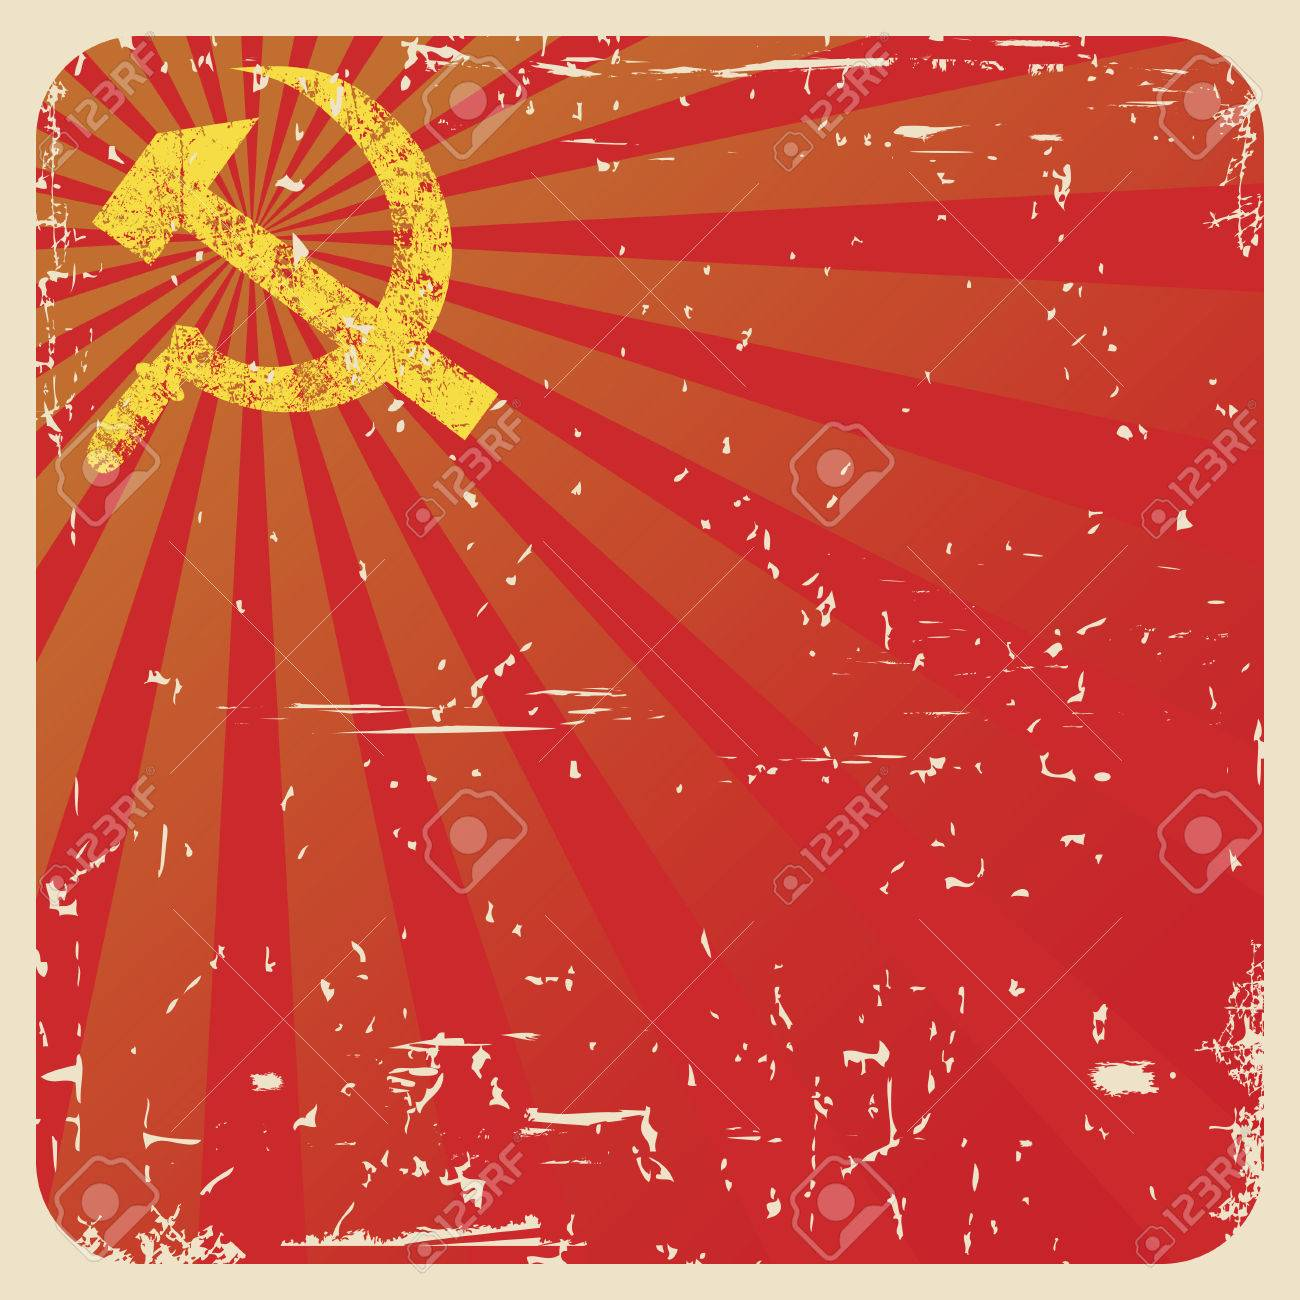 Grunge Soviet Background With Hammer And Sickle Vector 1300x1300